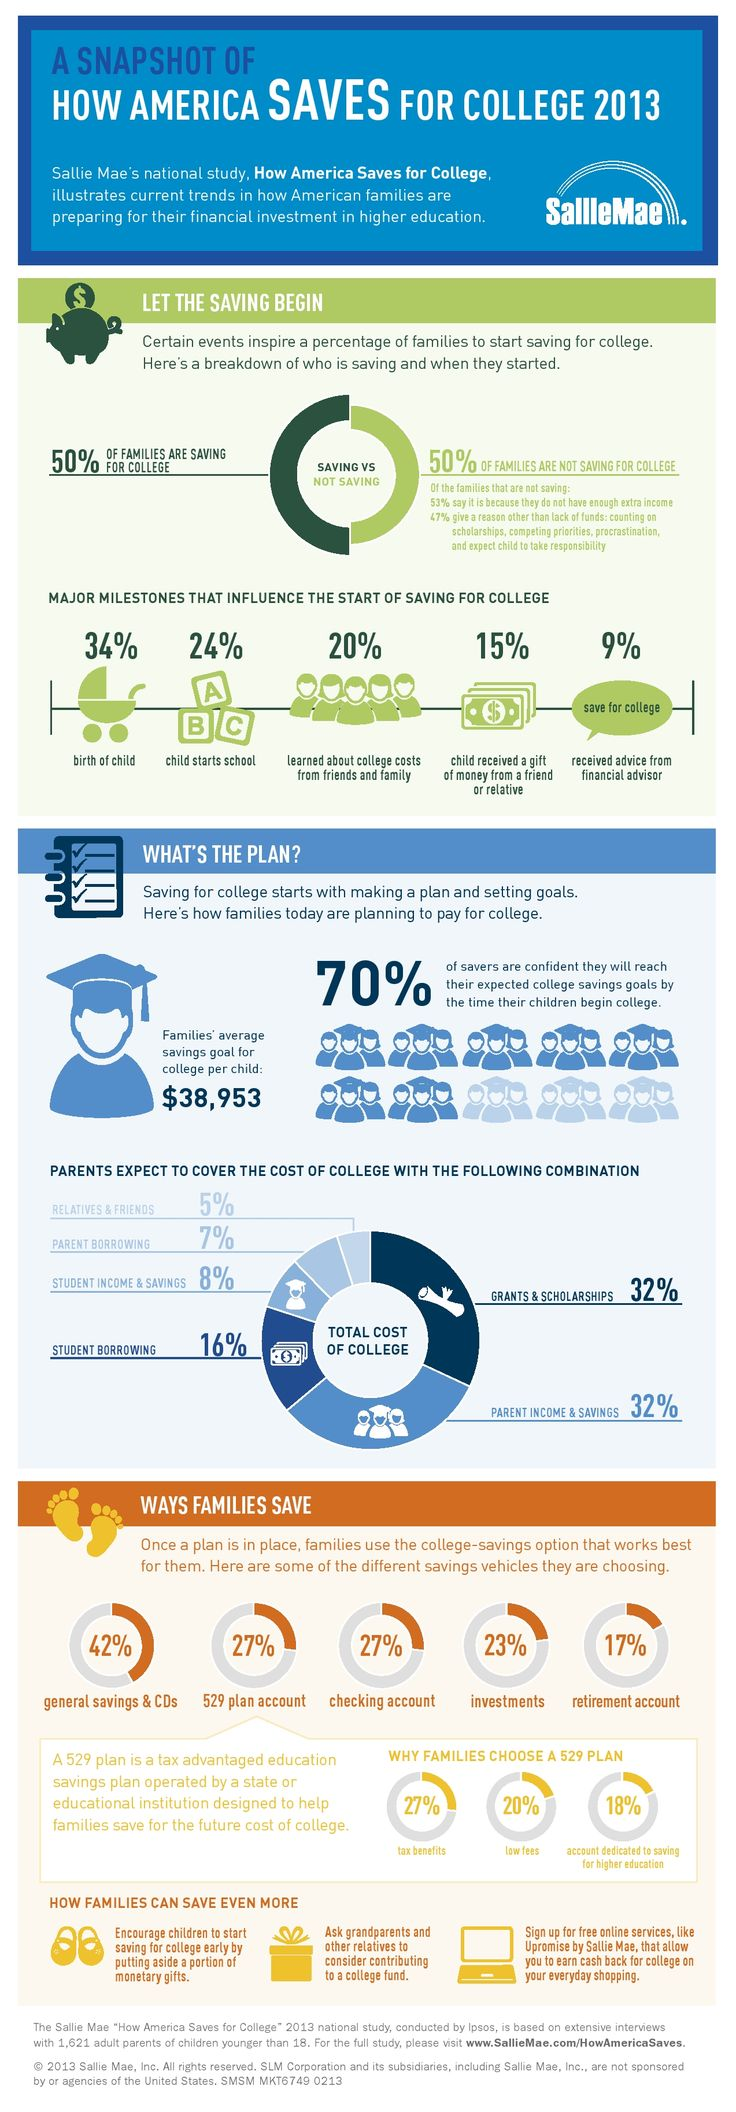 How America Saves For College 2013  - Sallie Mae's national study illustrates how American Families are saving for their higher education.